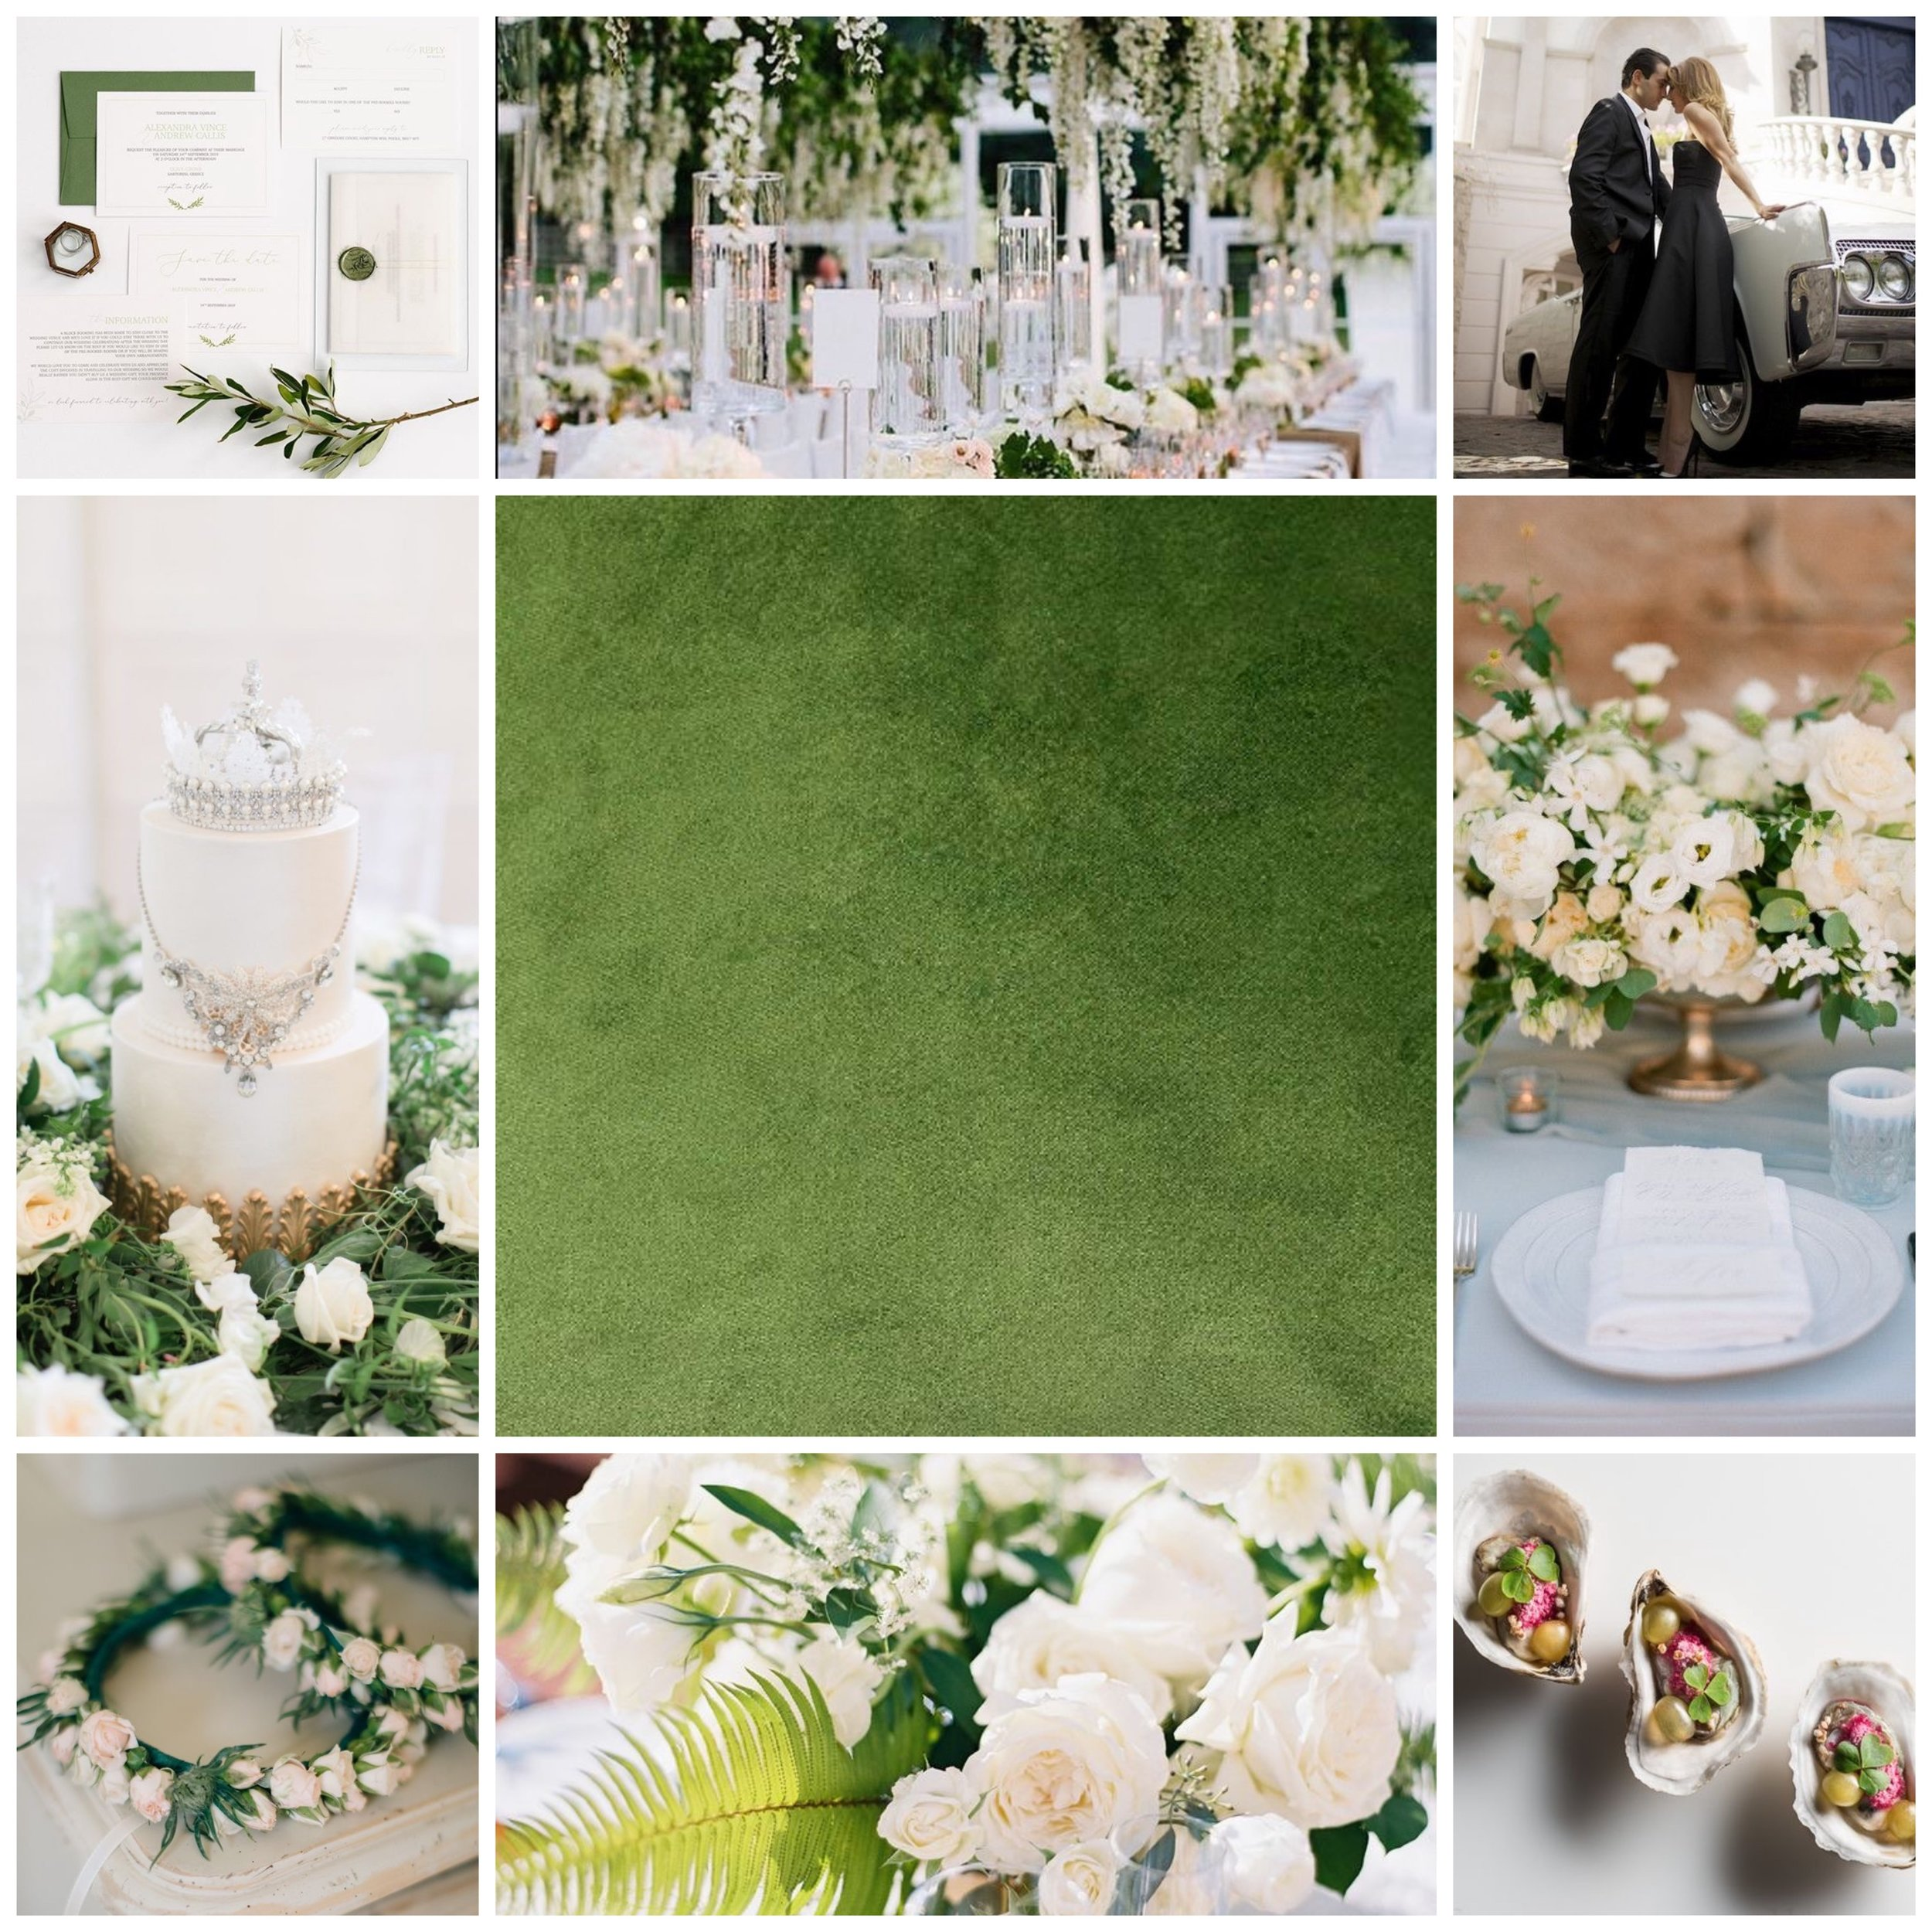 Green and White moodboard